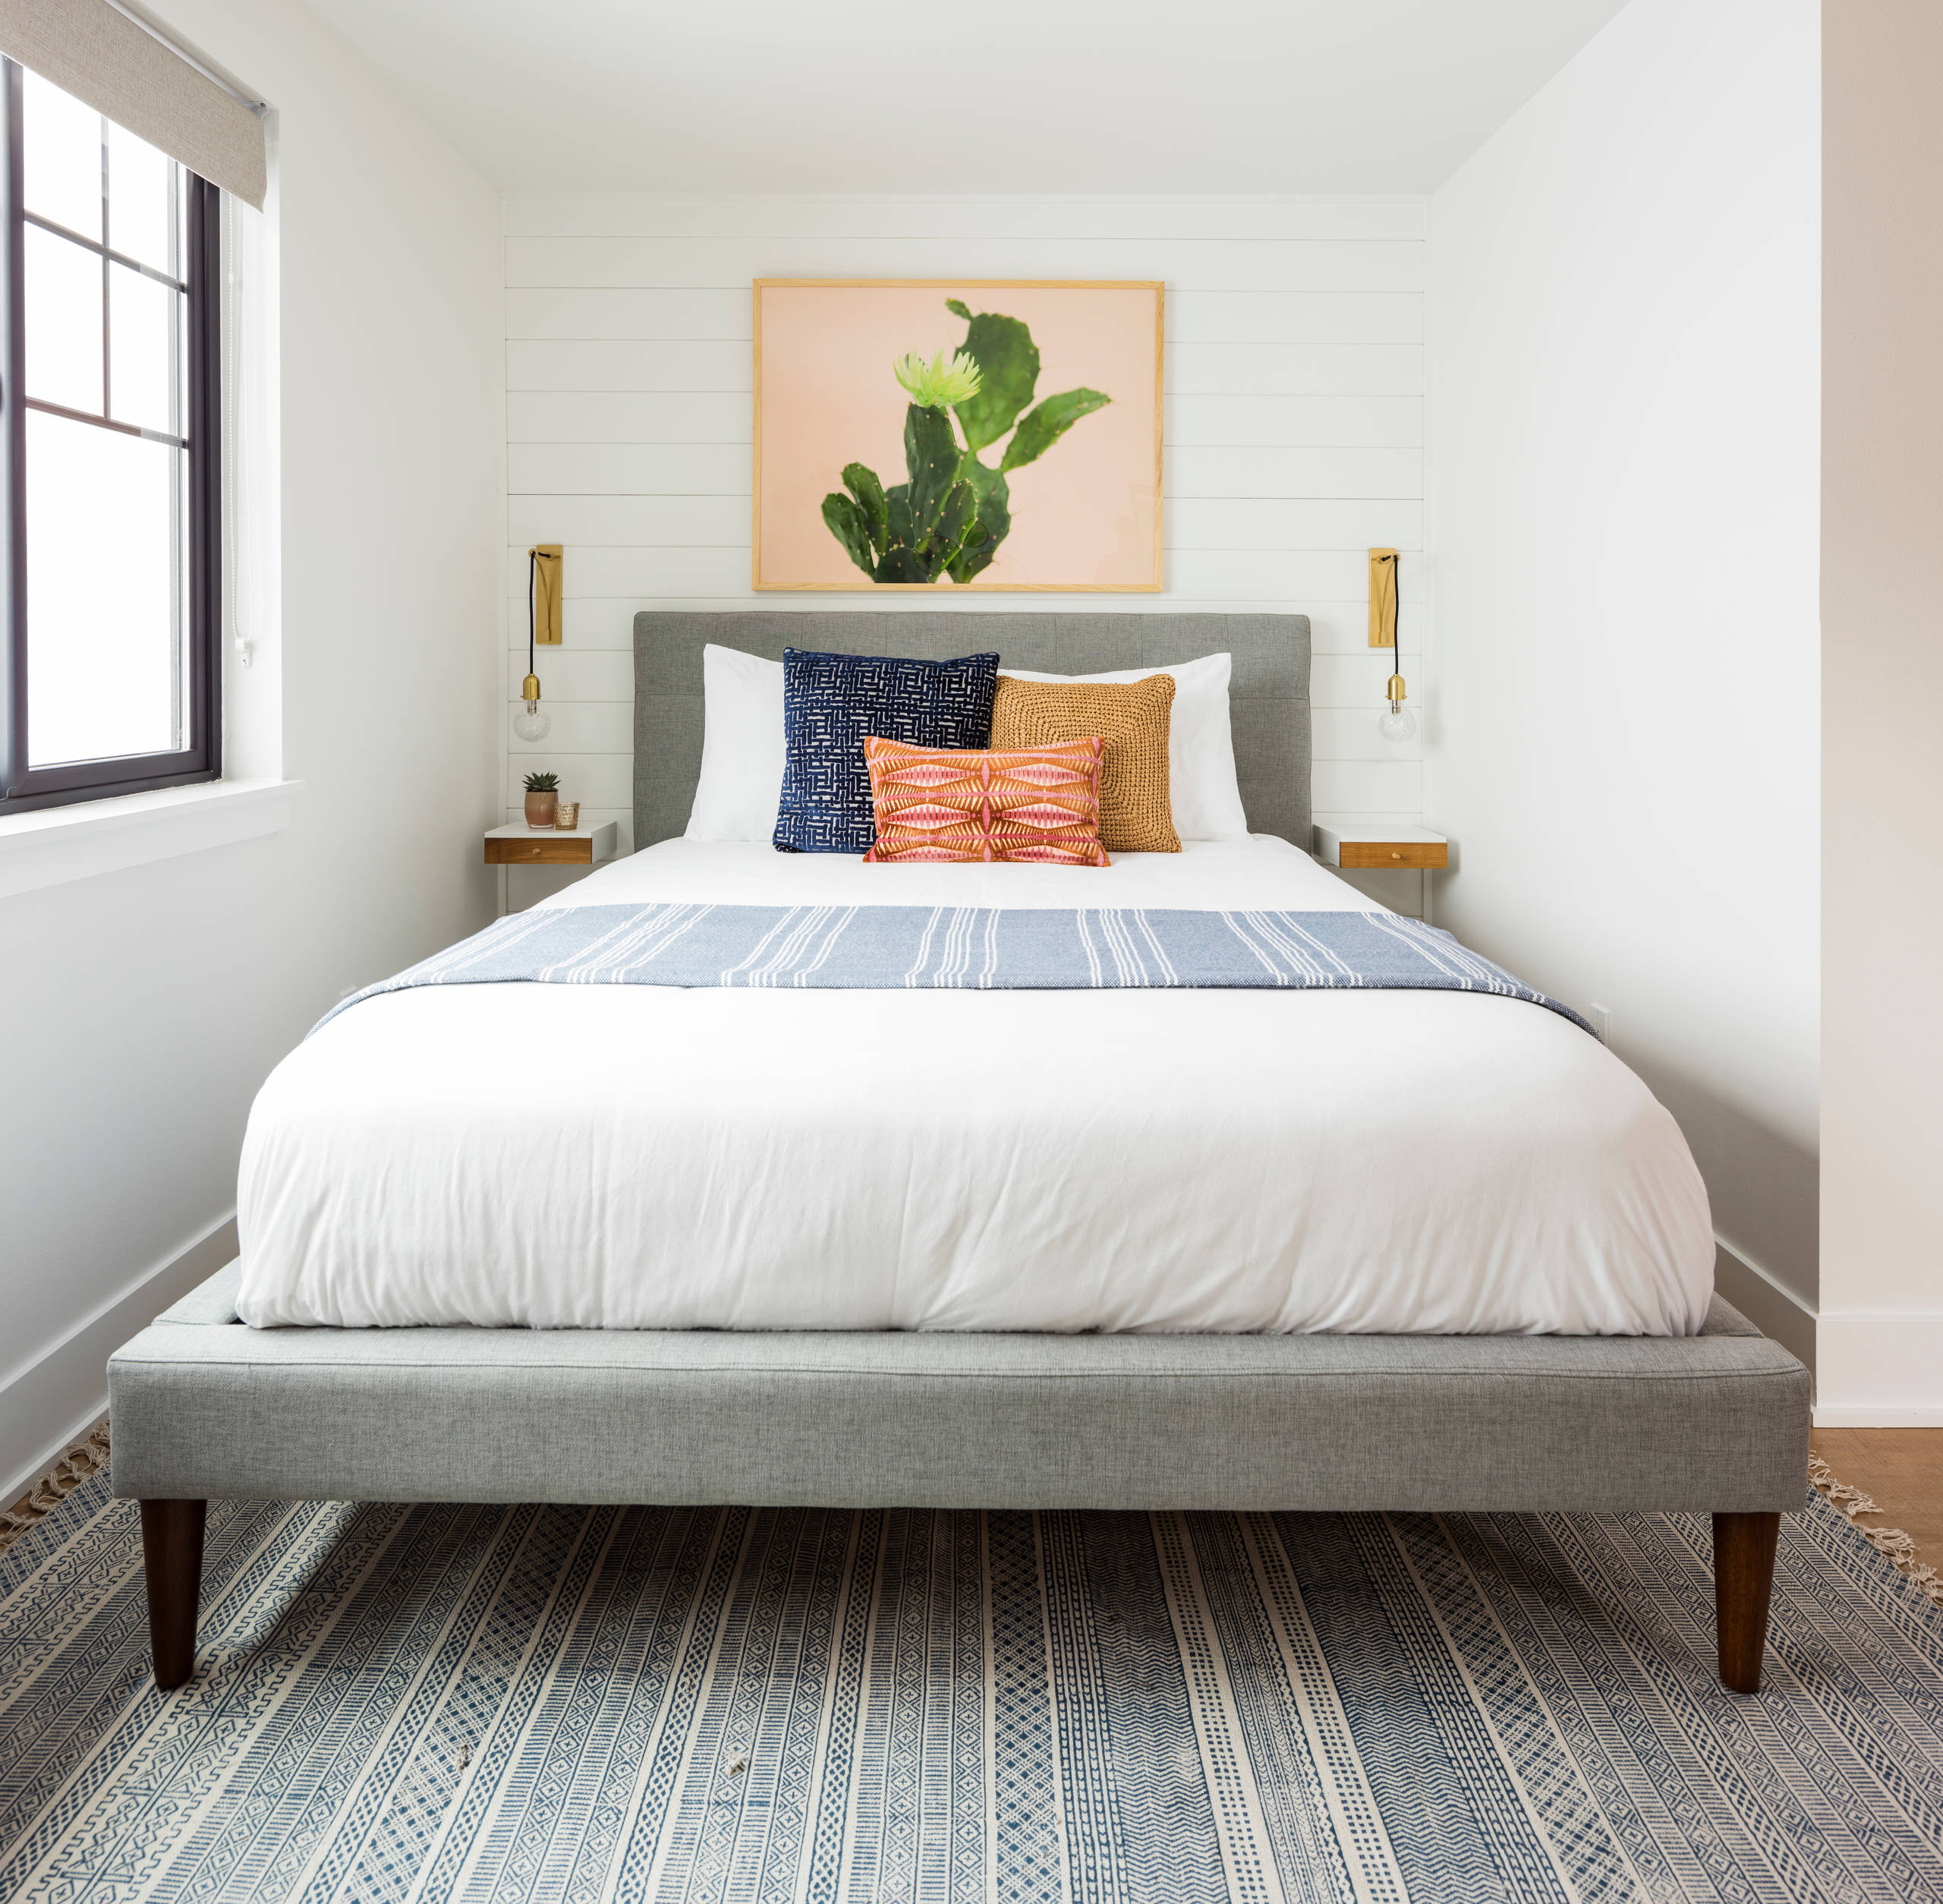 75 Beautiful Scandinavian Bedroom Pictures Ideas January 2021 Houzz